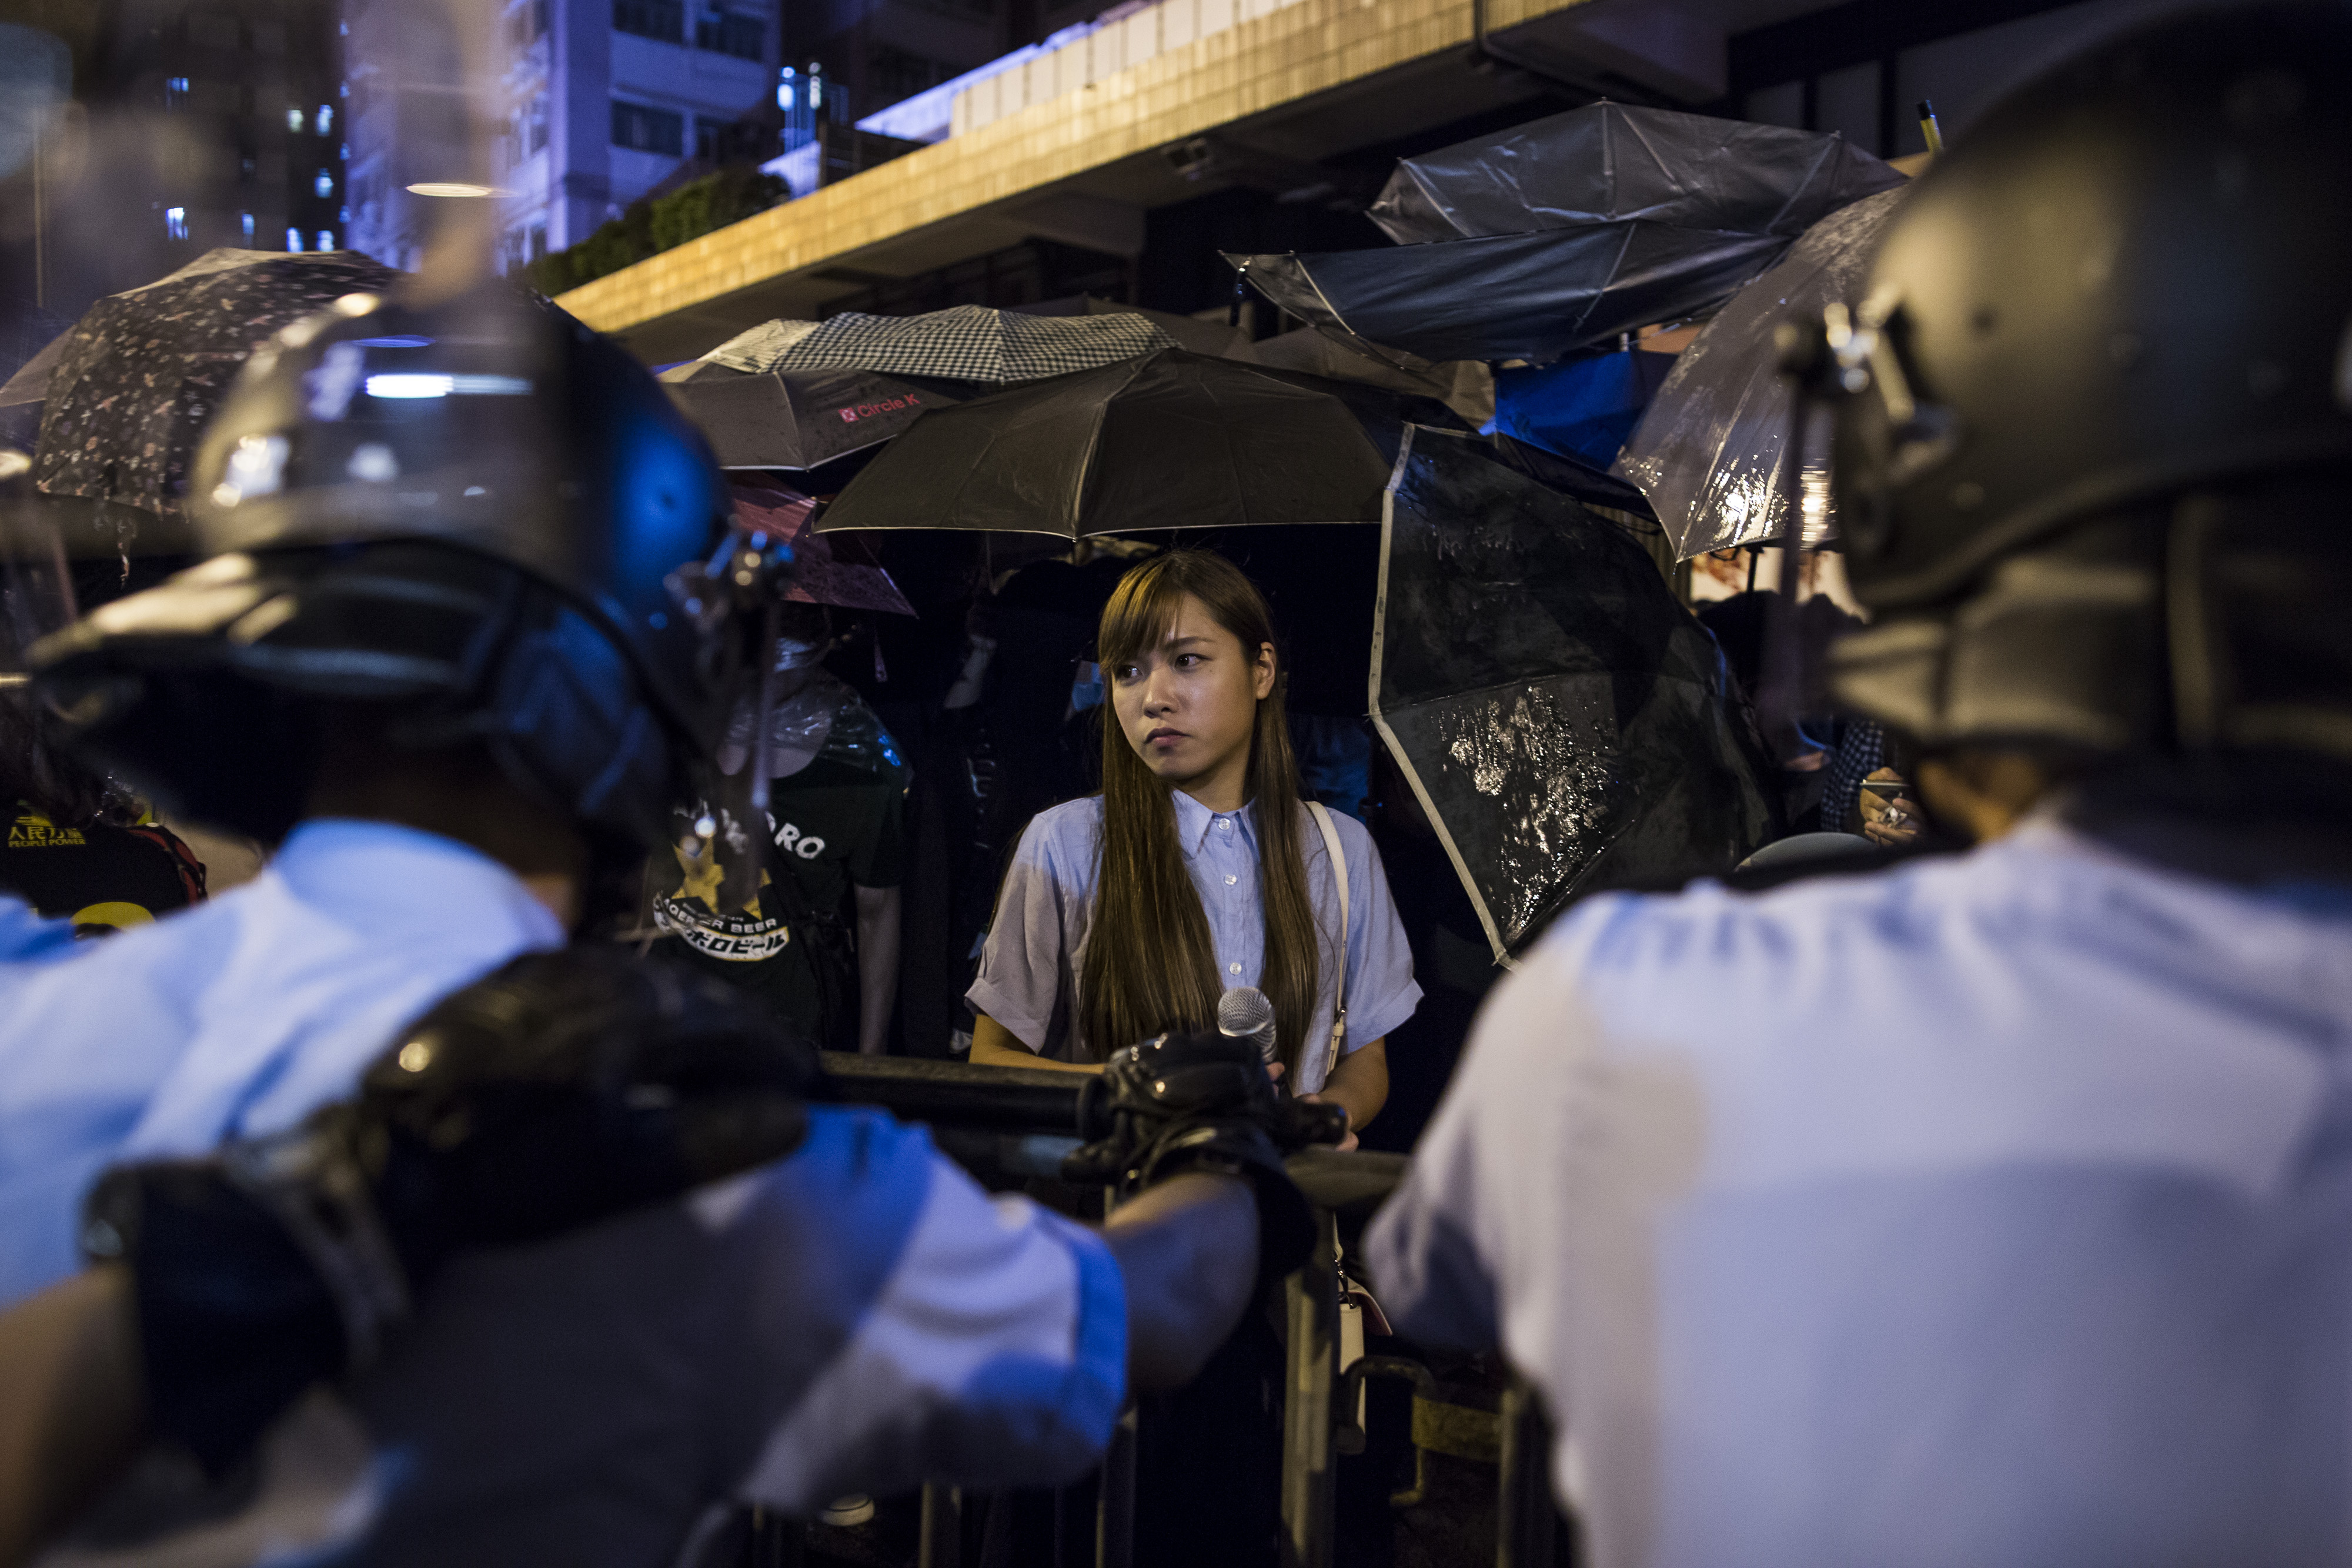 Yau Wai-ching stands among demonstrators during a protest near the Liaison Office of the Central People's Government in Hong Kong on Nov. 6, 2016